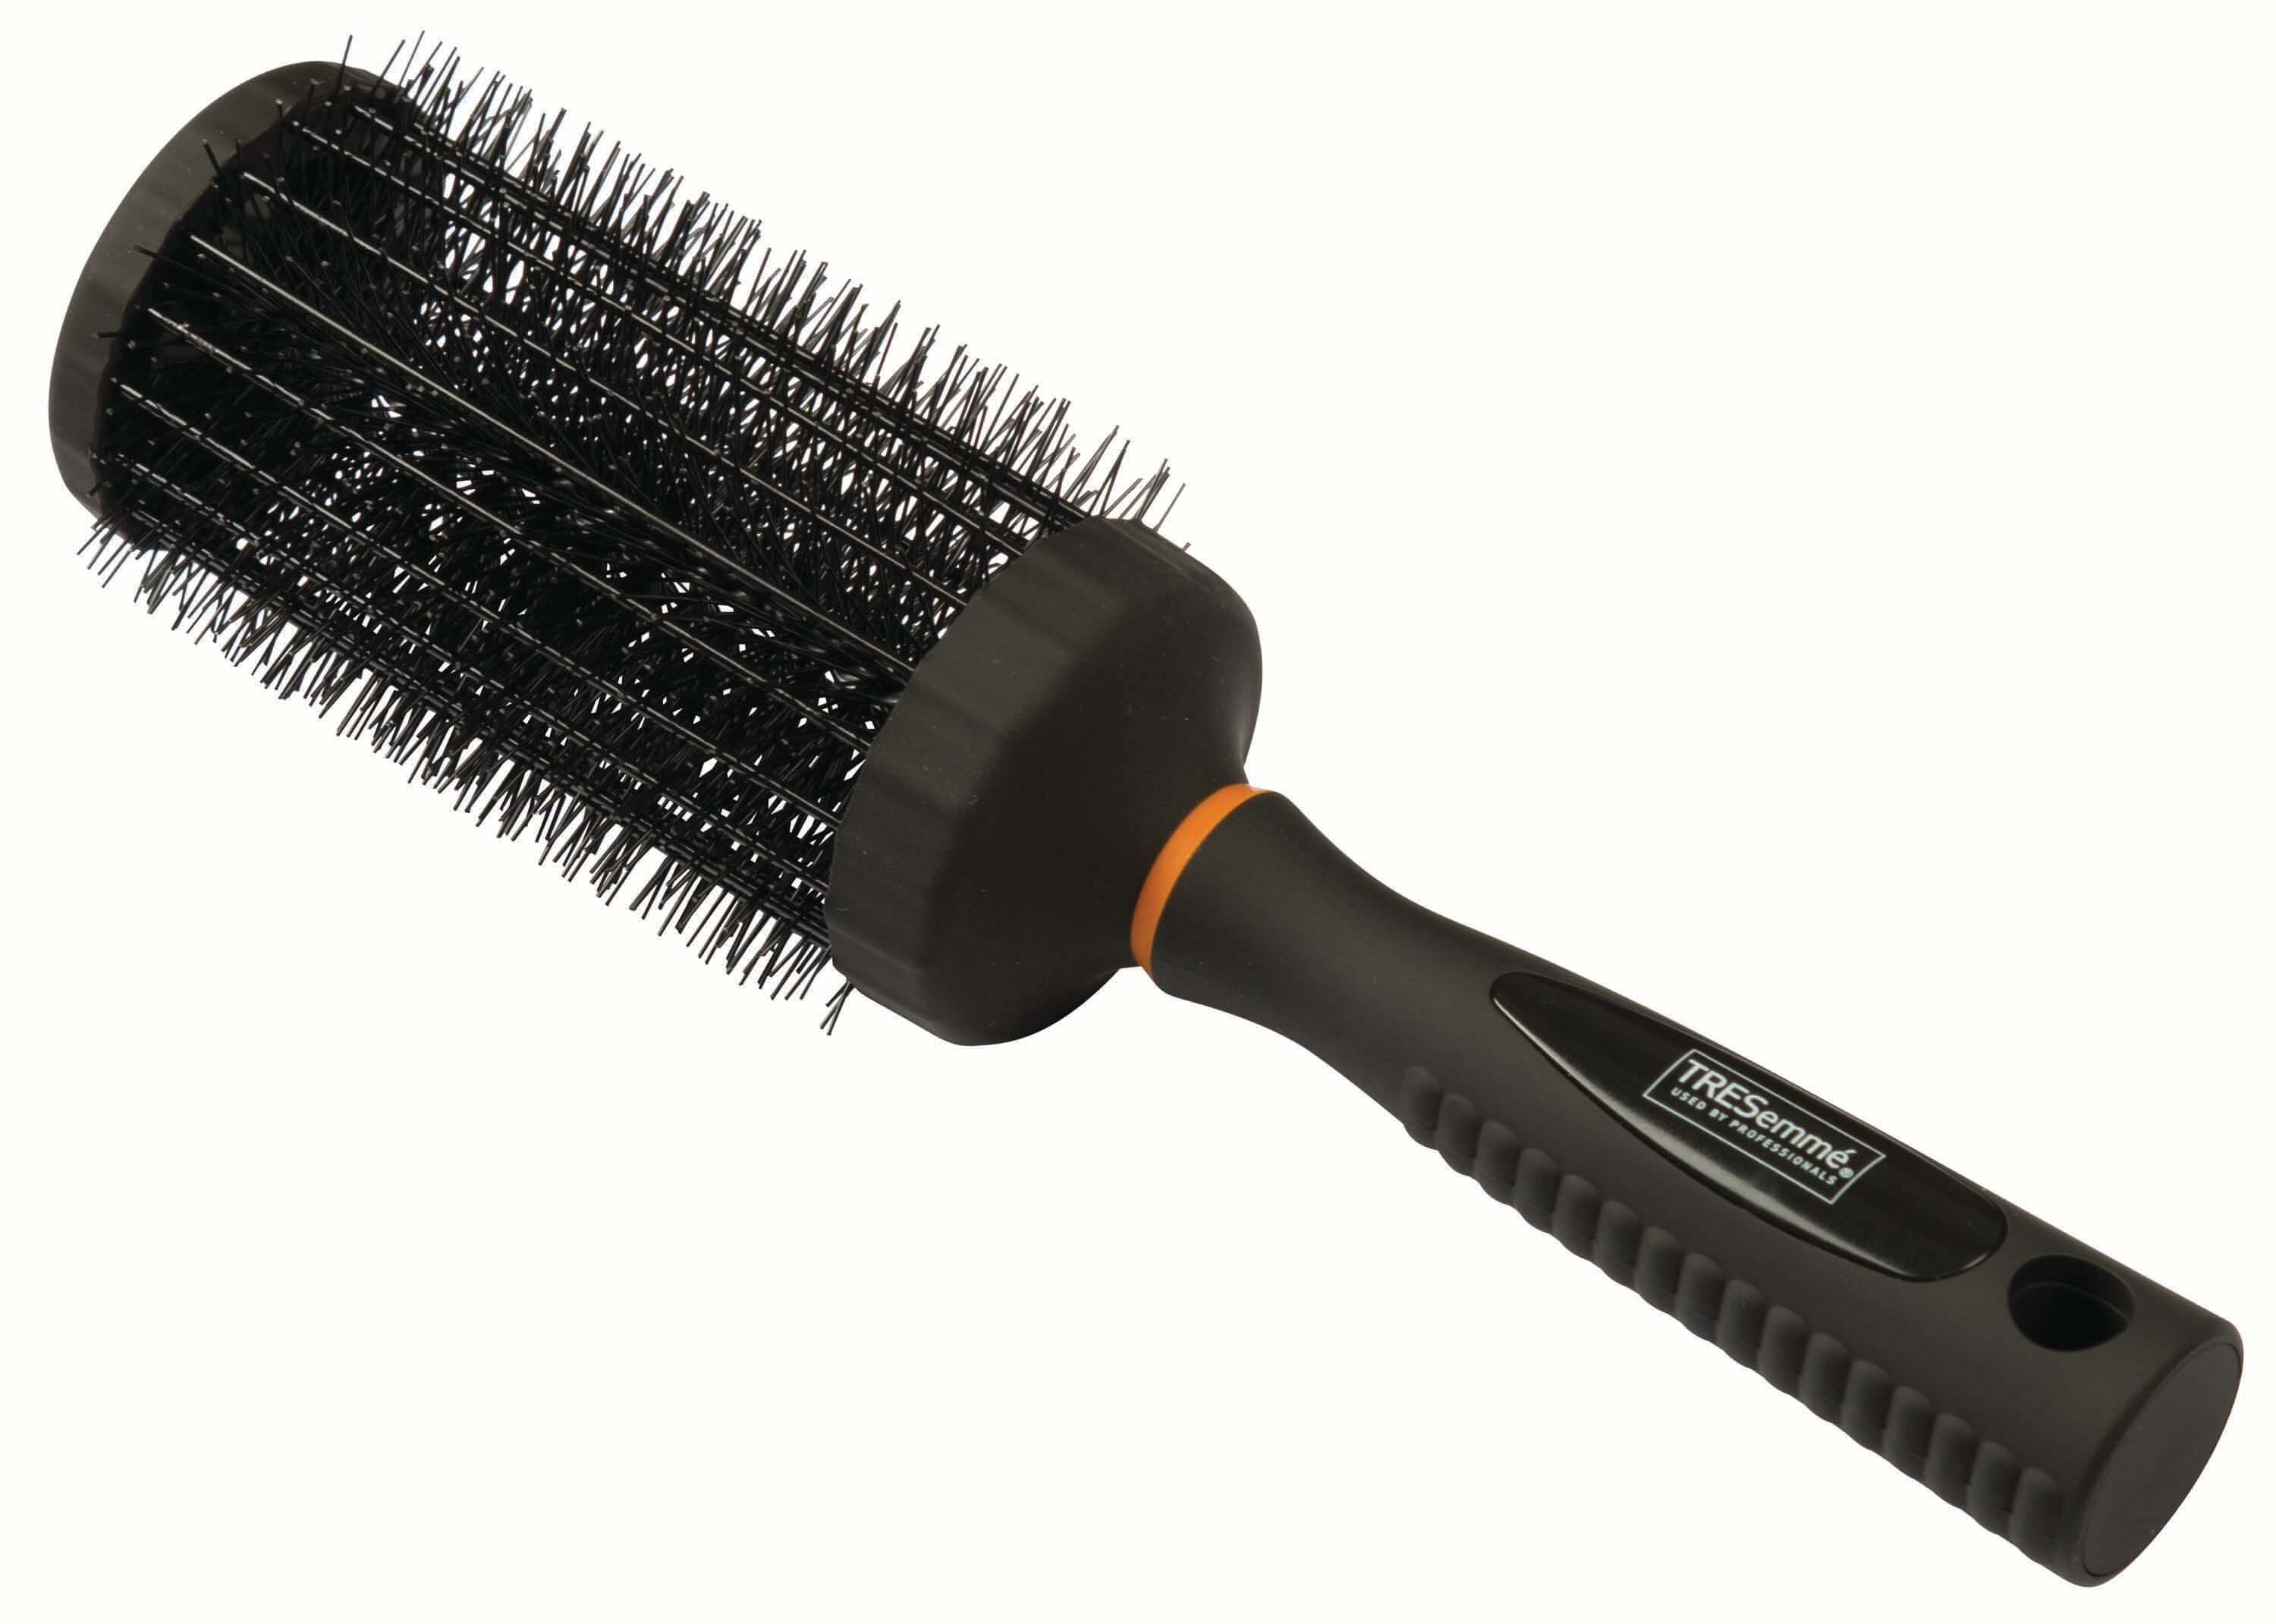 Hair styling tools: TRESemme vented brush